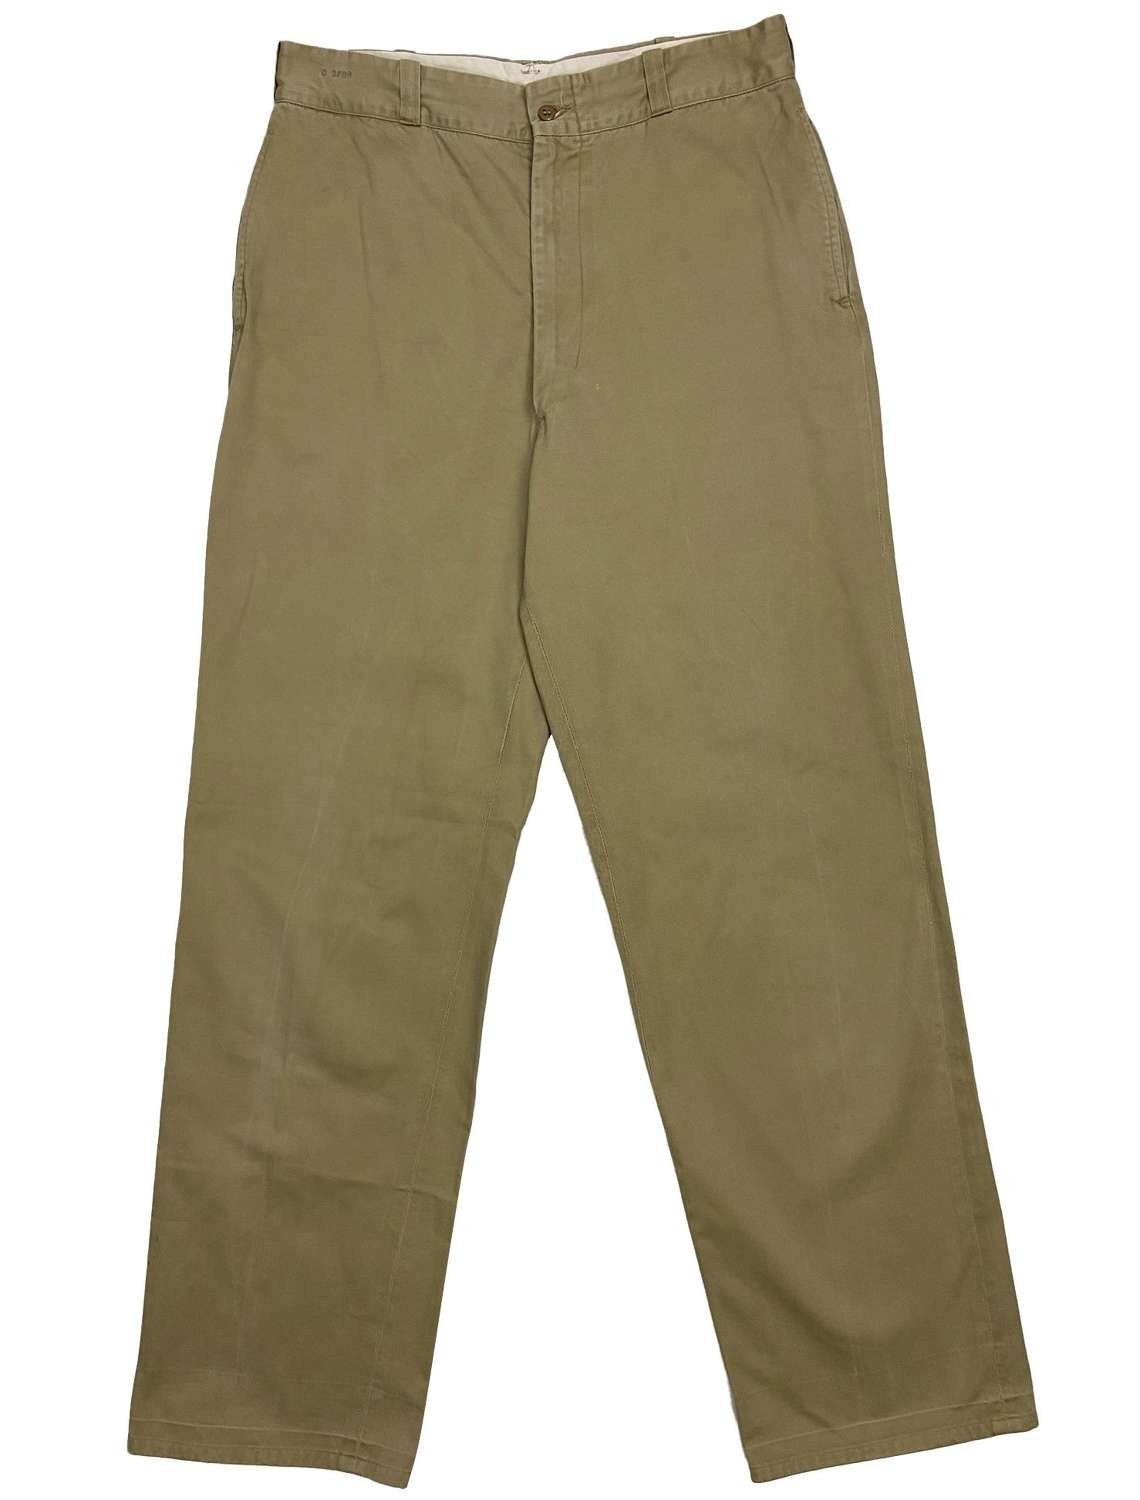 Original 1967 Dated US Army Chinos Trousers 34x33